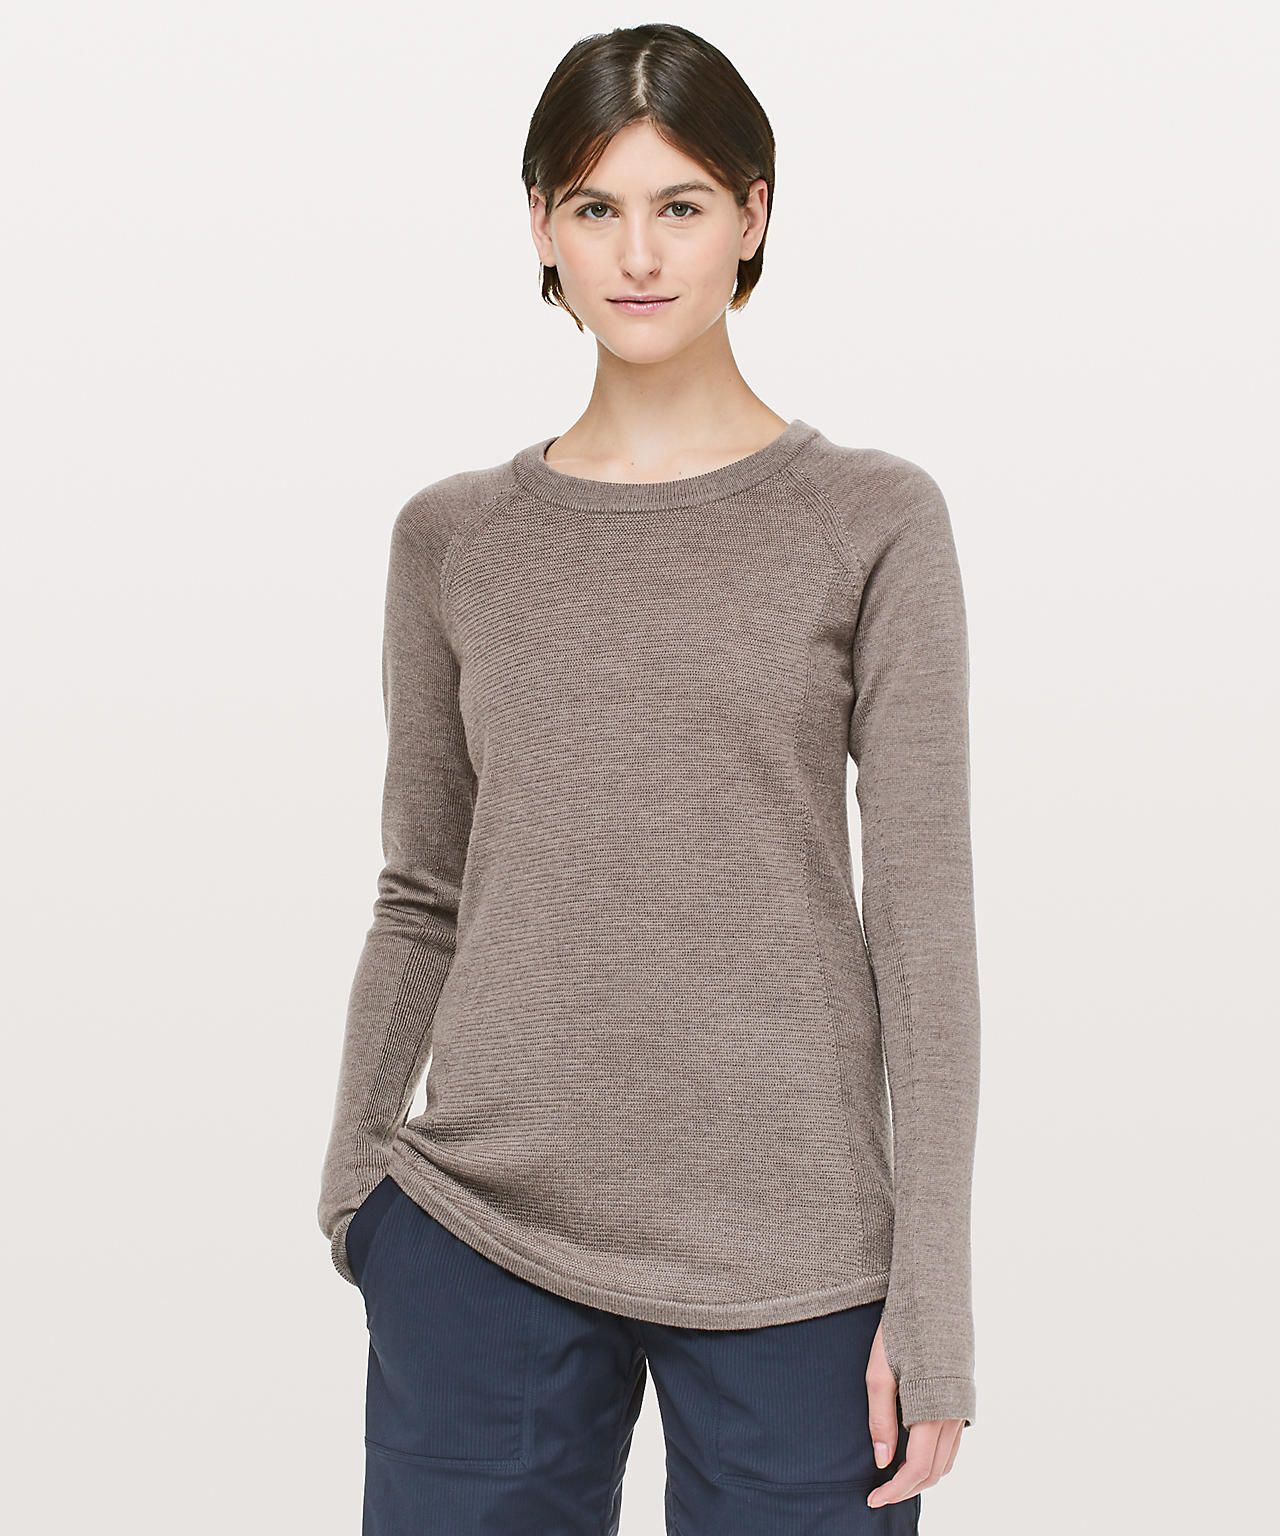 a37eaf5450fe heathered cool cocoa | Lululemon | Sweaters, Sweaters for women ...